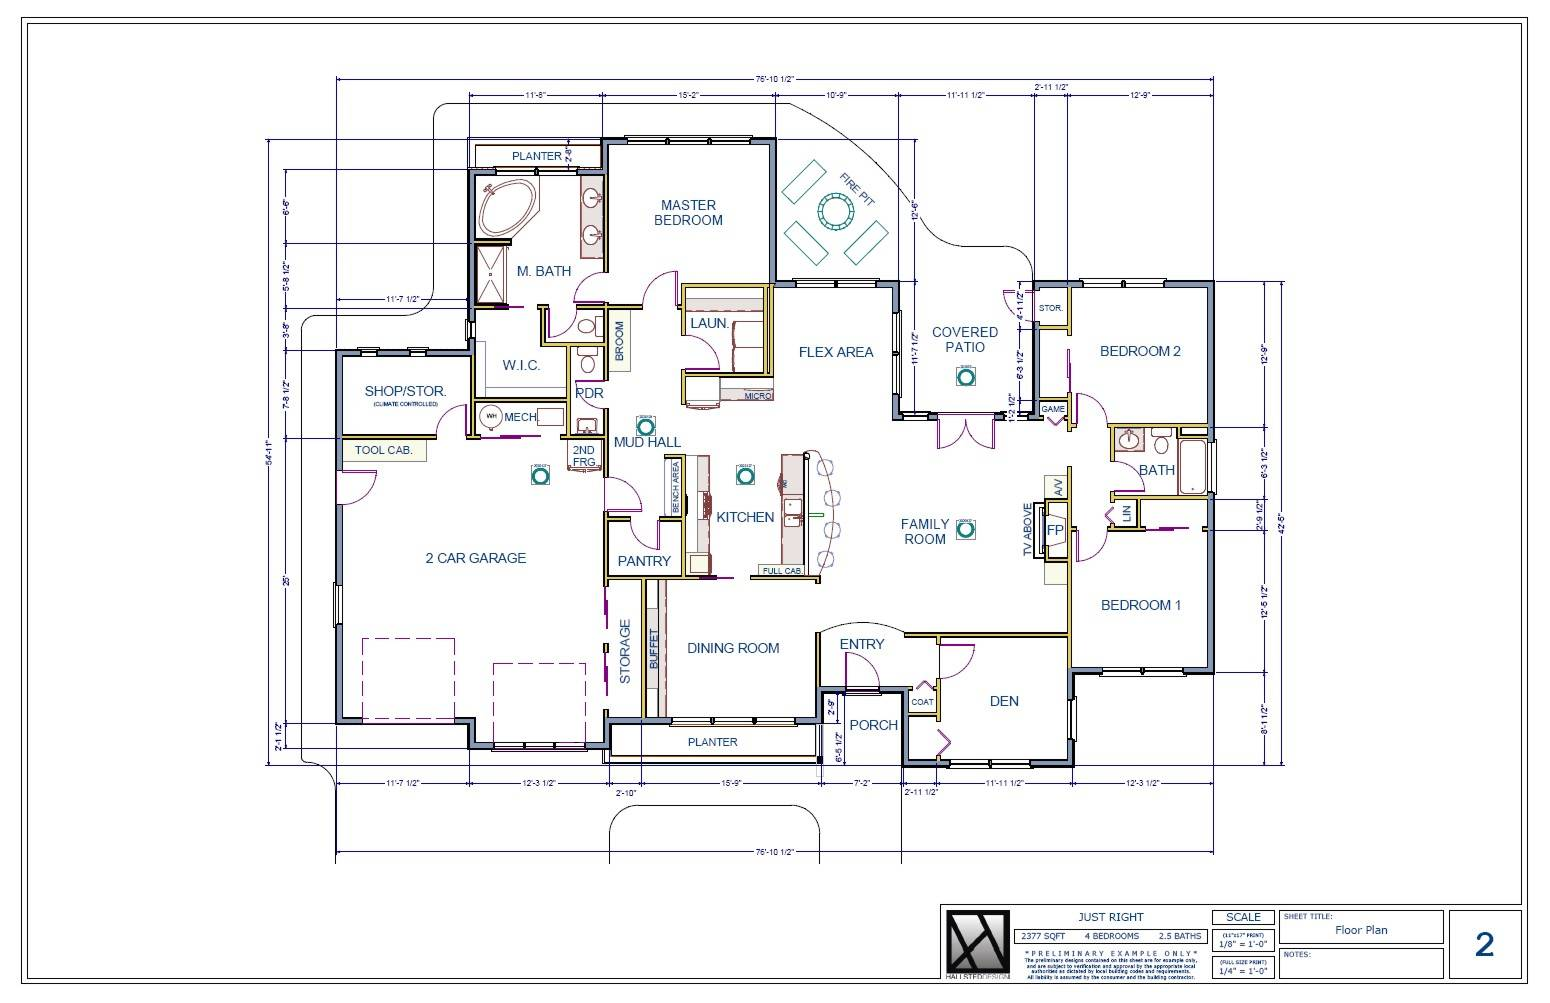 Sample floor plan of a house house design ideas House plan sample